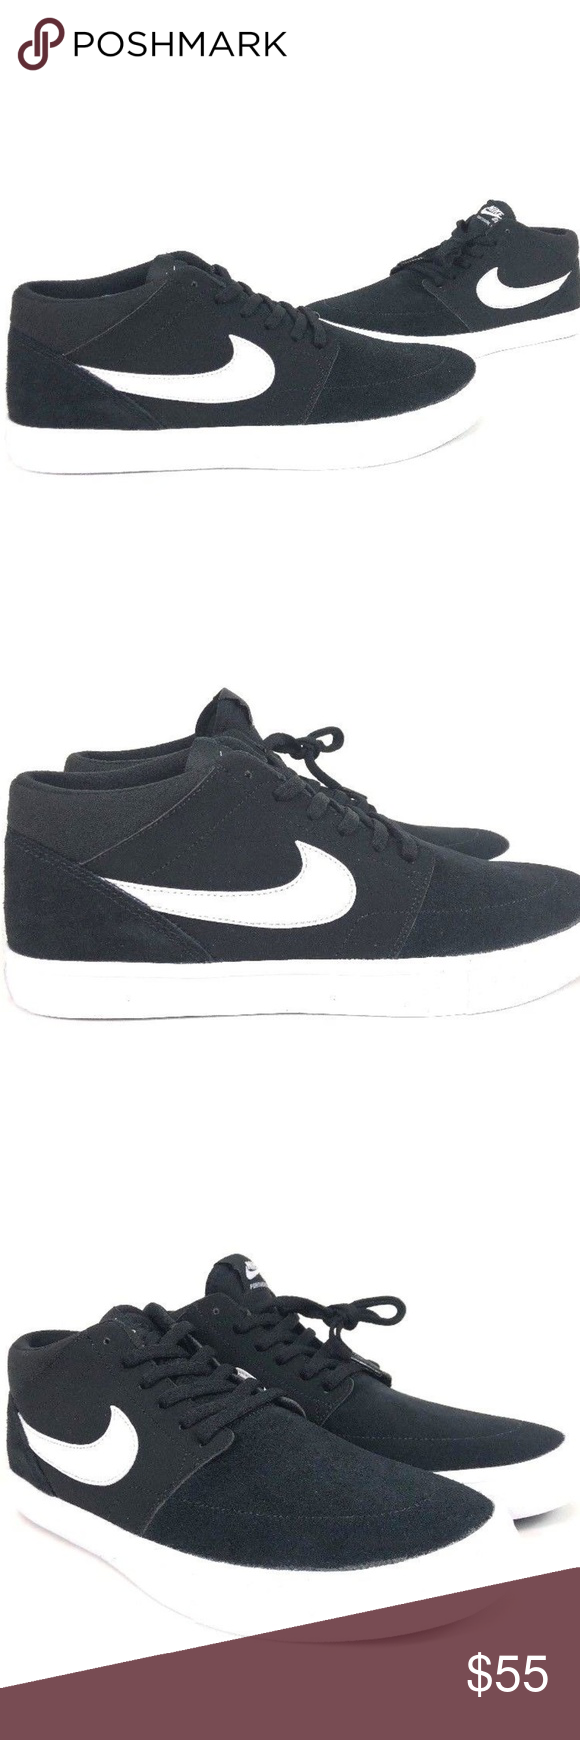 sports shoes 008f6 c7a09 Nike SB Solarsoft Portmore Mid Mens Casual Shoes Nike SB Solarsoft Portmore  II Mid Men s Casual Shoes Size 10.5 Black 923198-011 These Casual NIKE Shoes  are ...